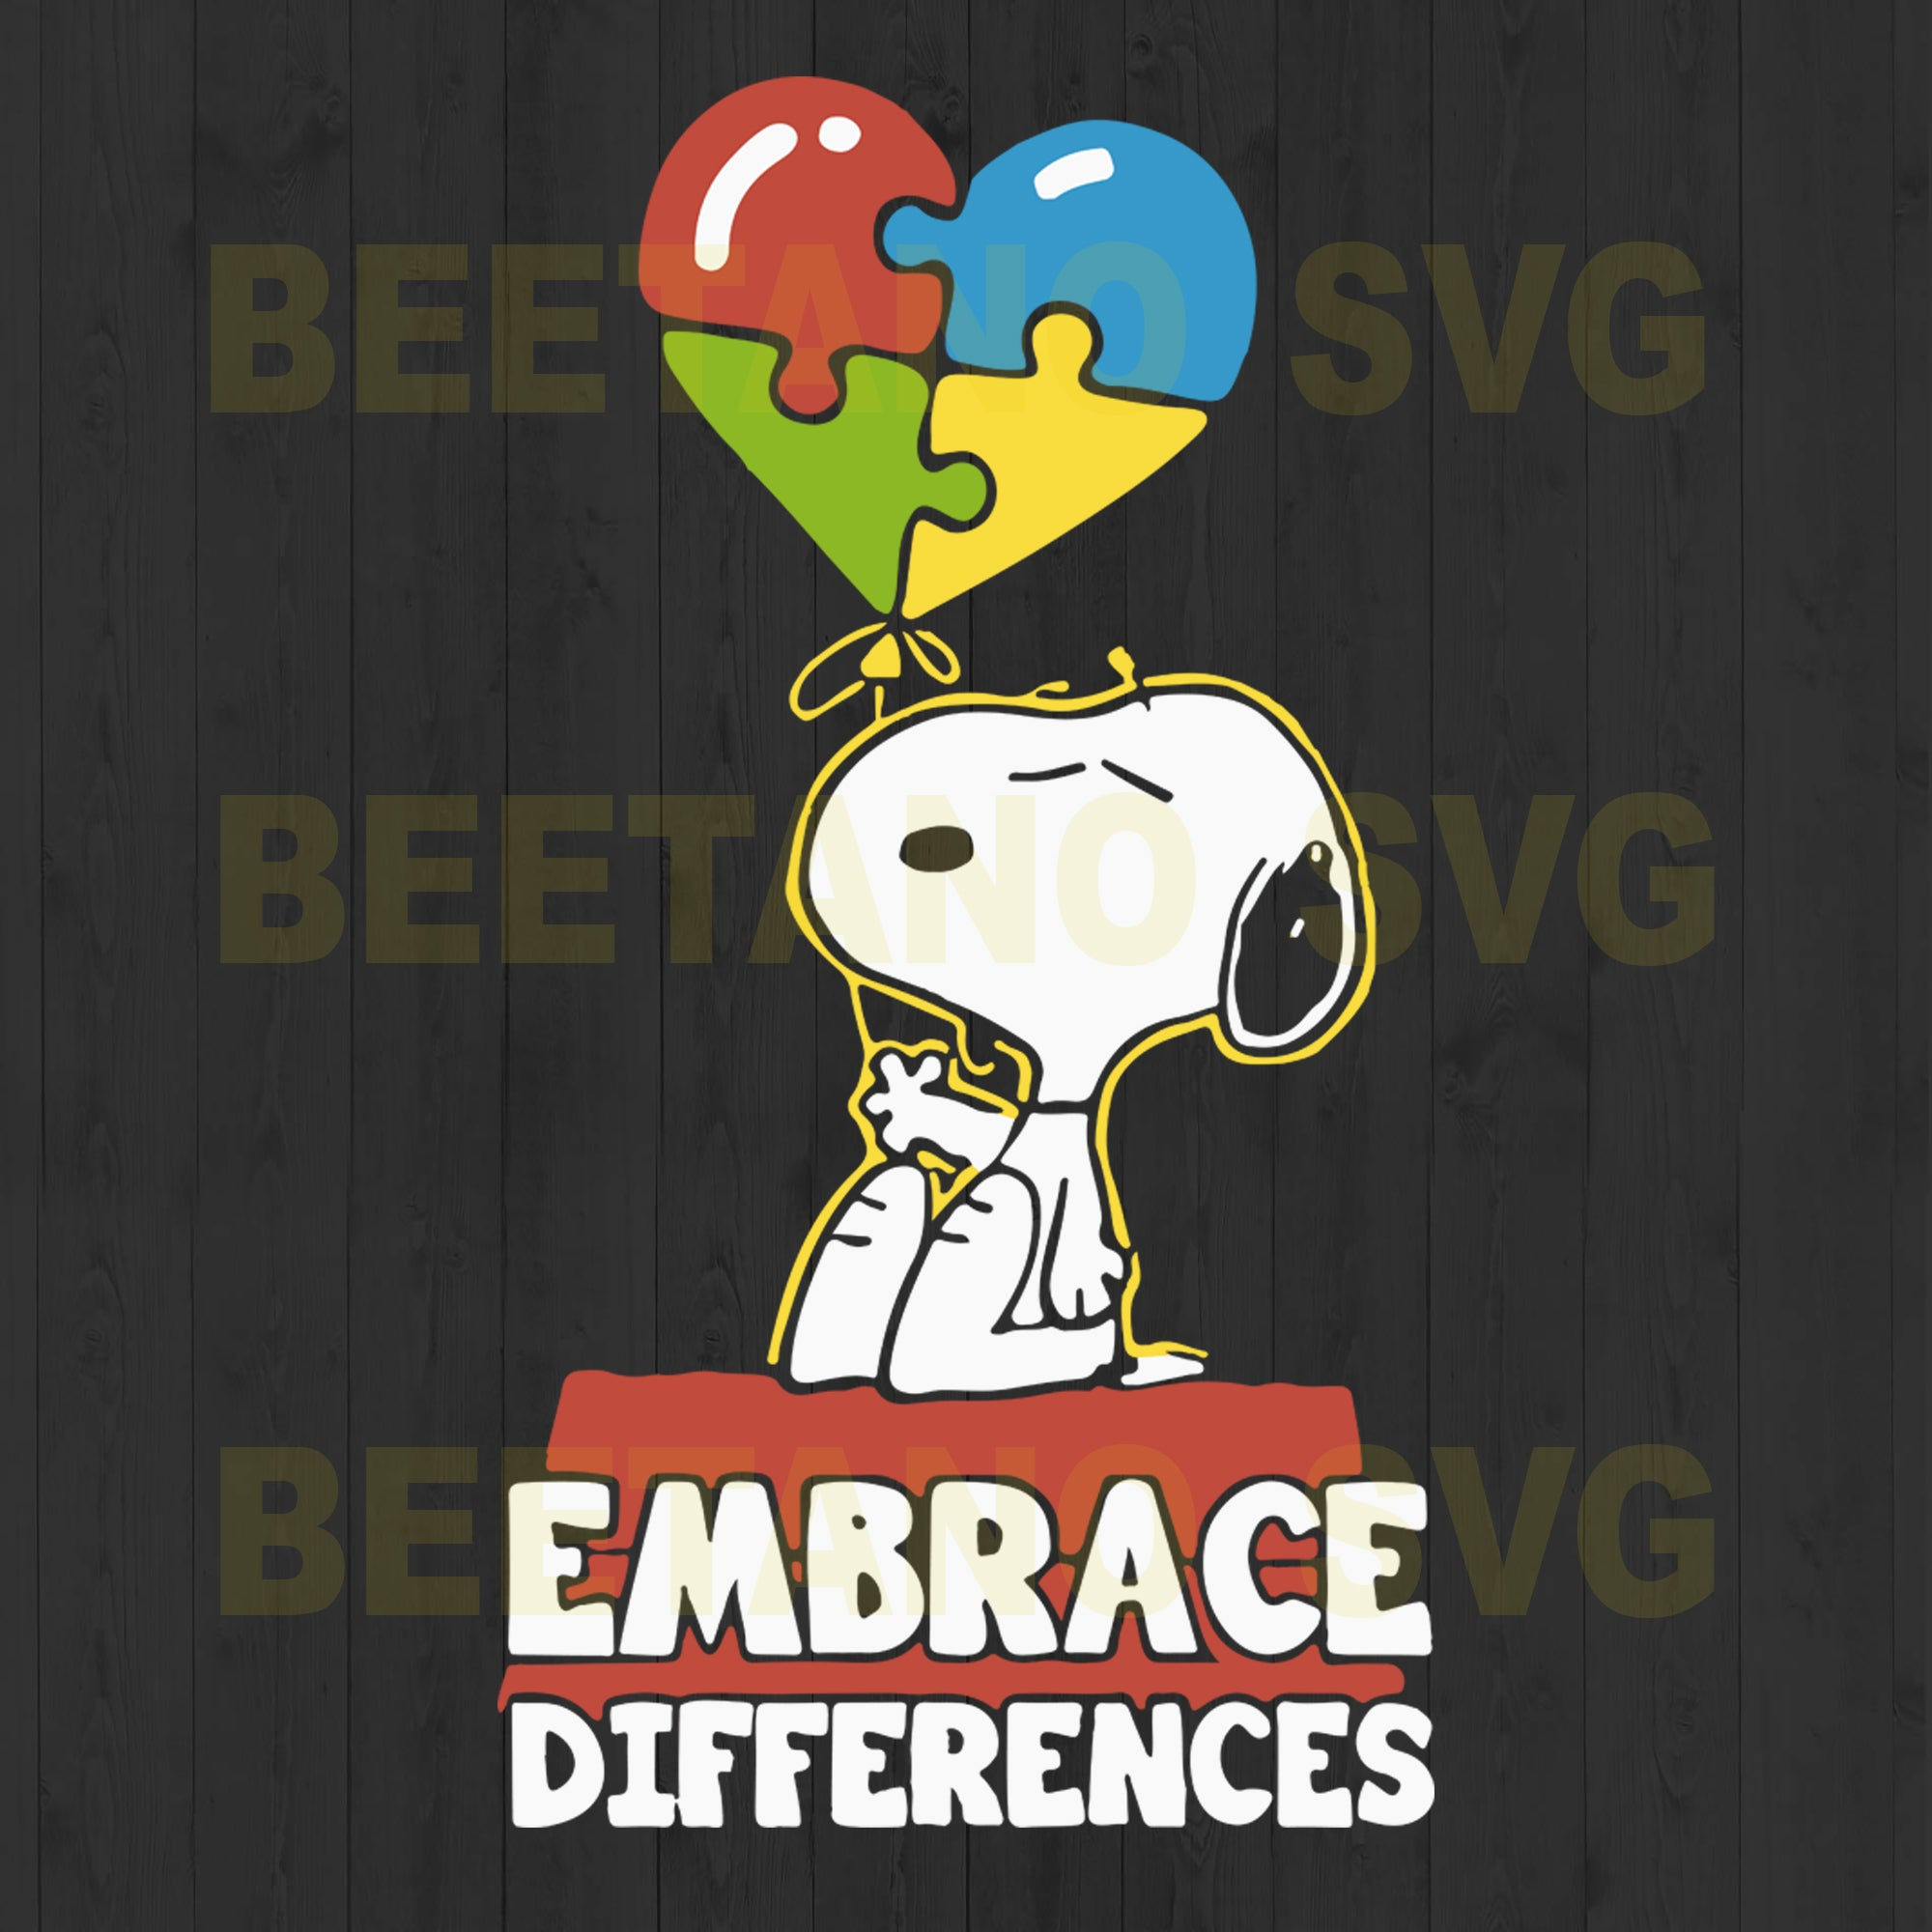 Snoopy Autism Embrace Differences, Snoopy Autism Svg, Snoopy Embrace Differences Files